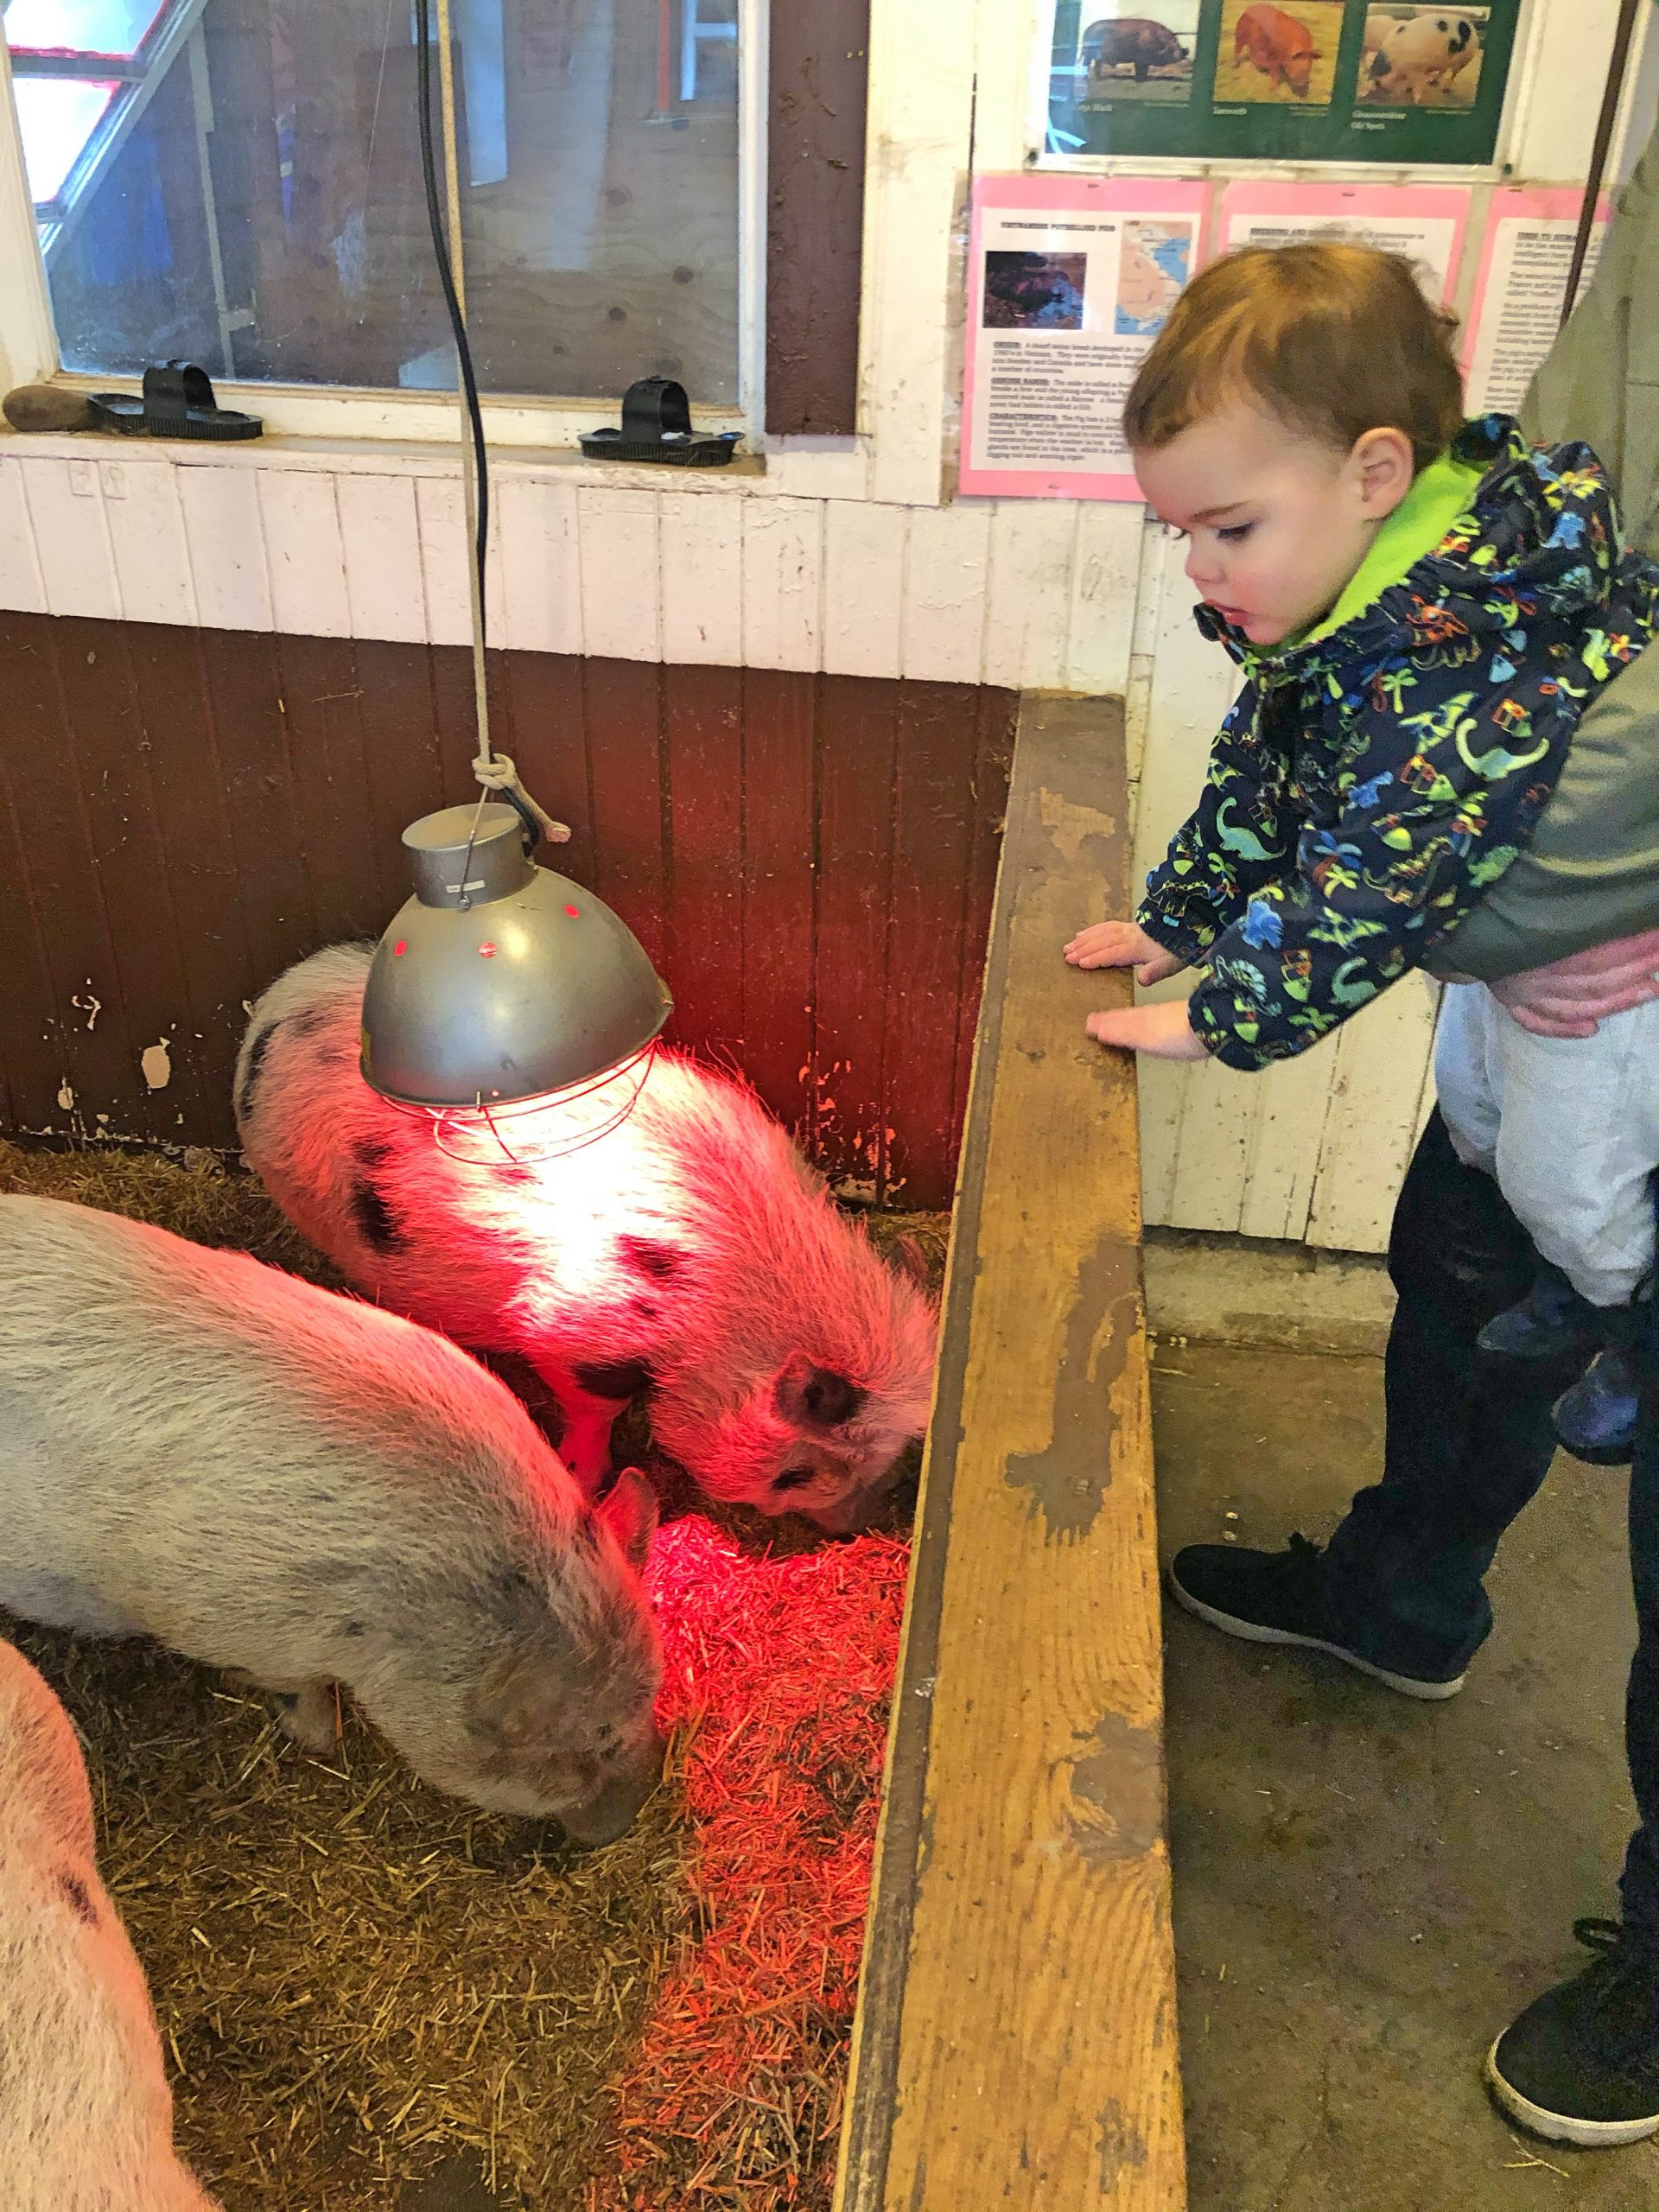 Pigs at Maplewood Farm